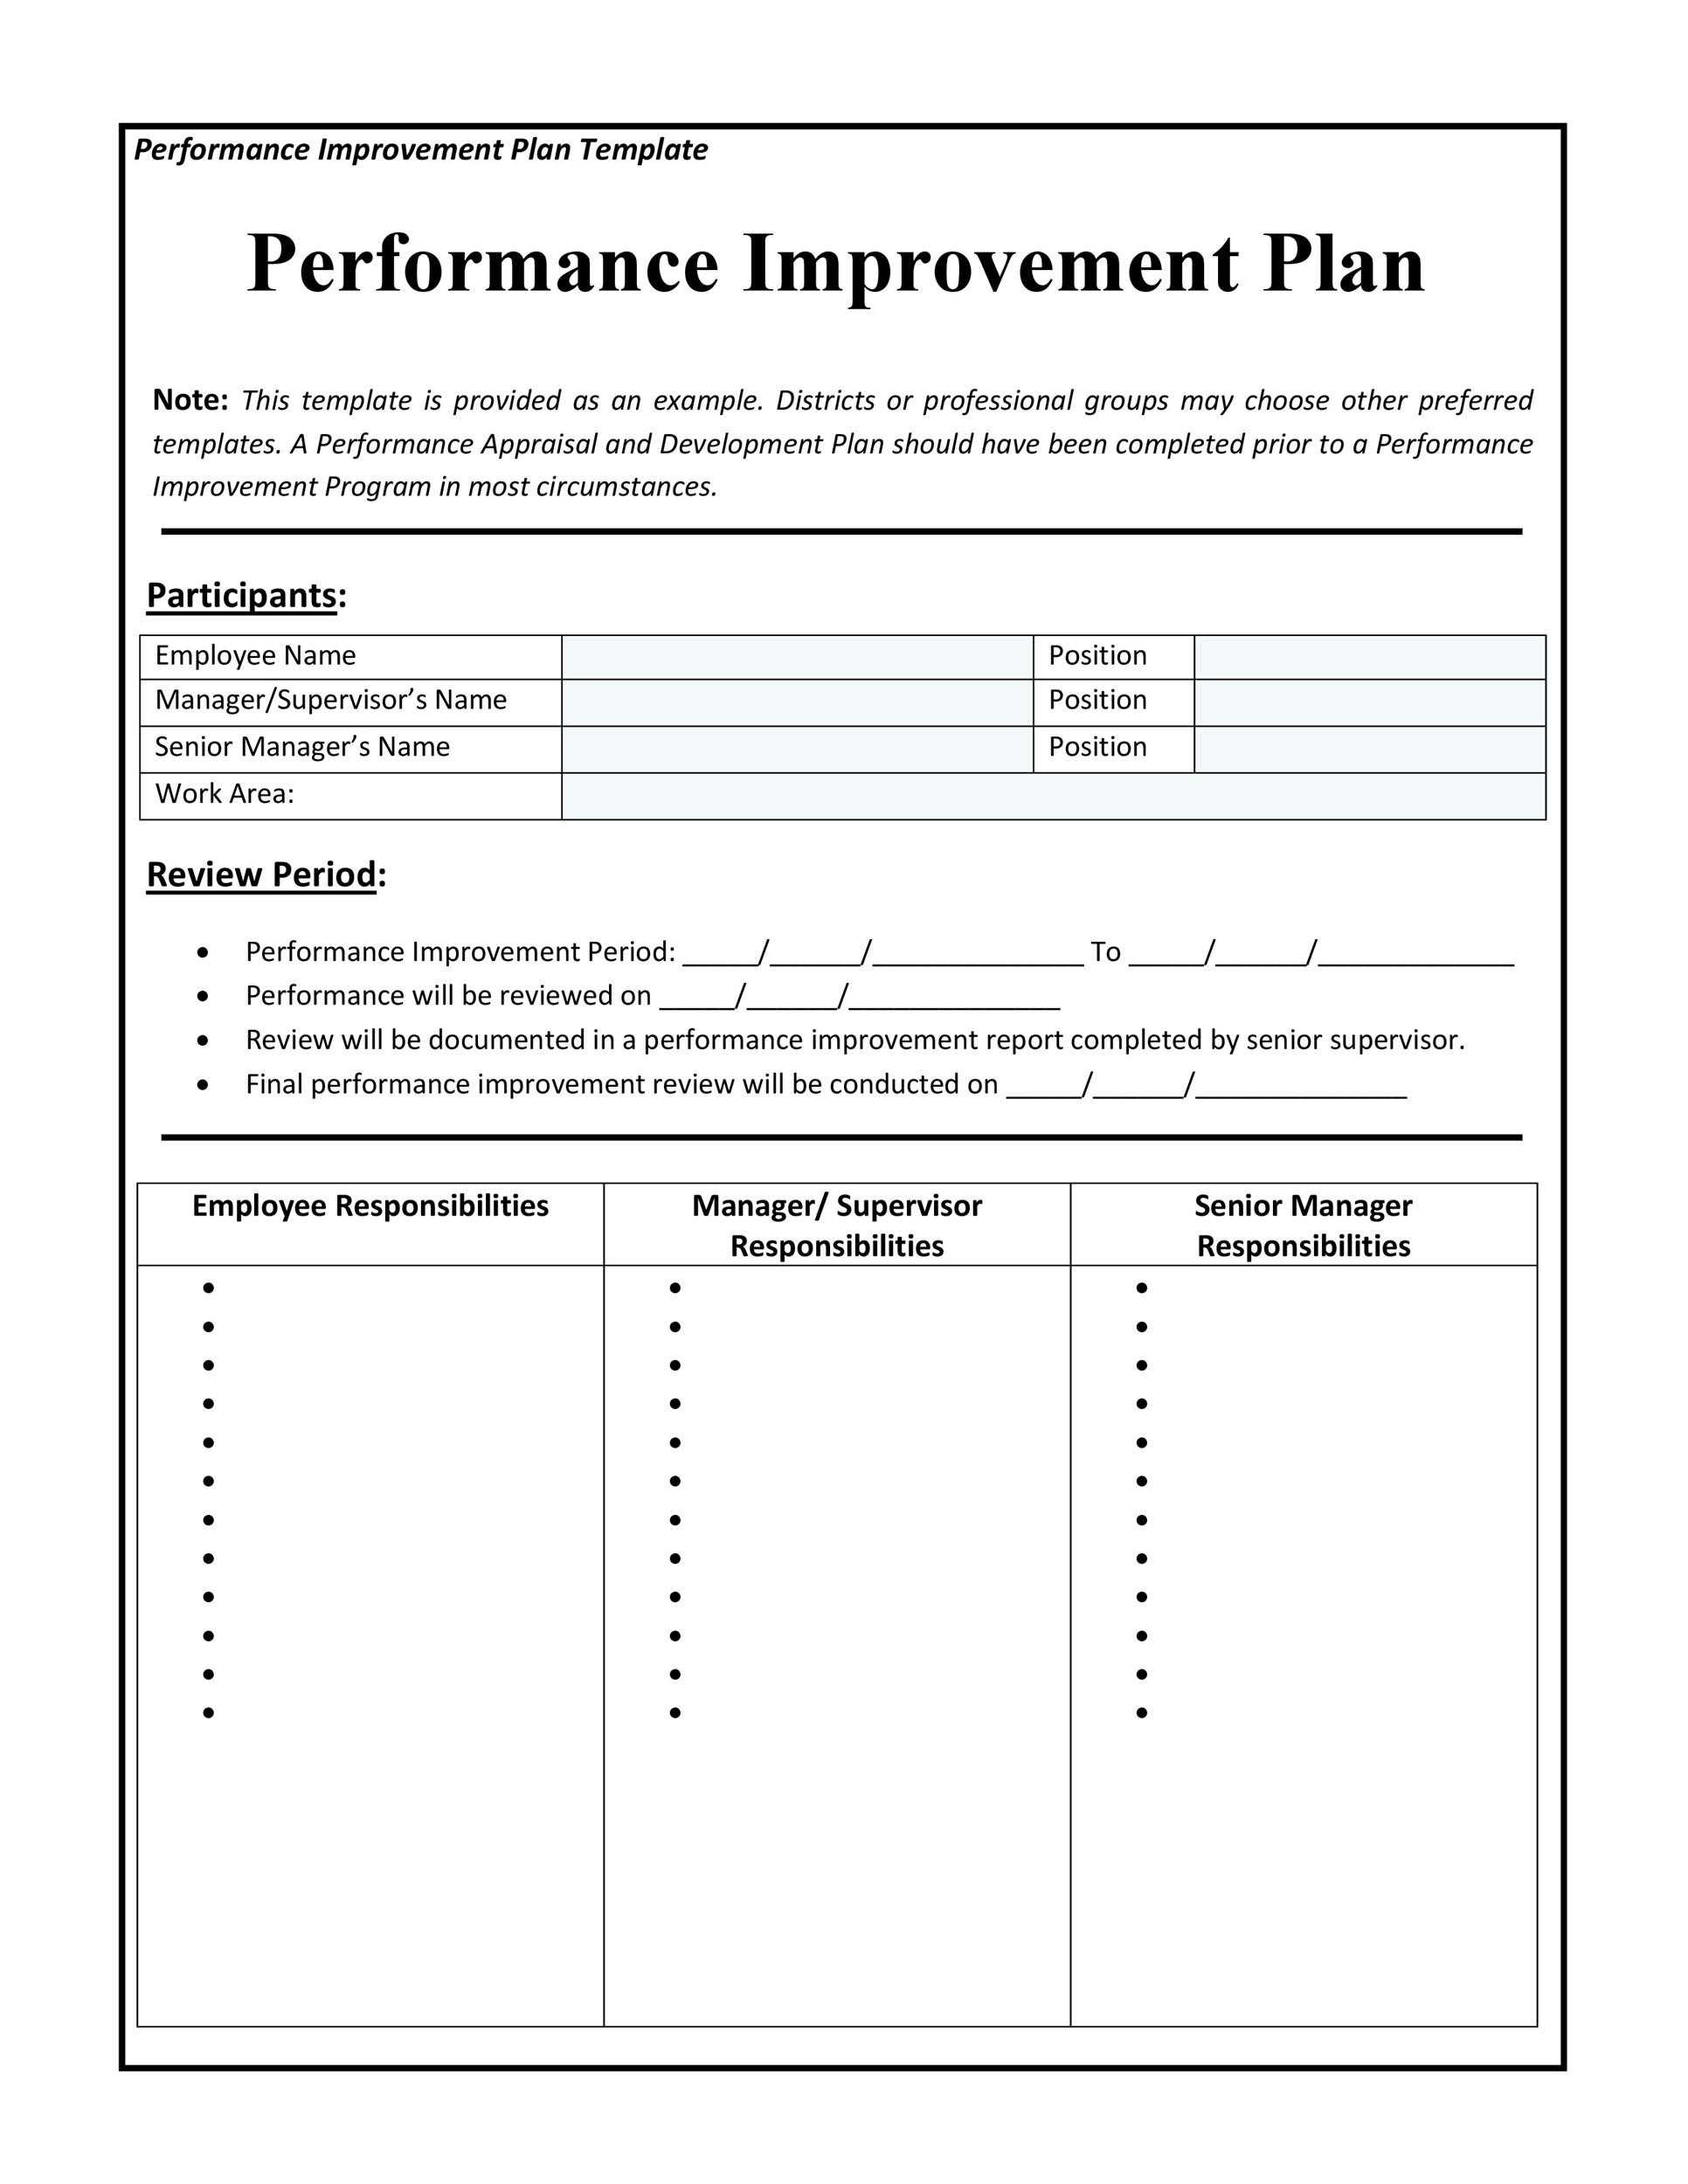 Performance Improvement Plan Examples  Employee Development Plan Template